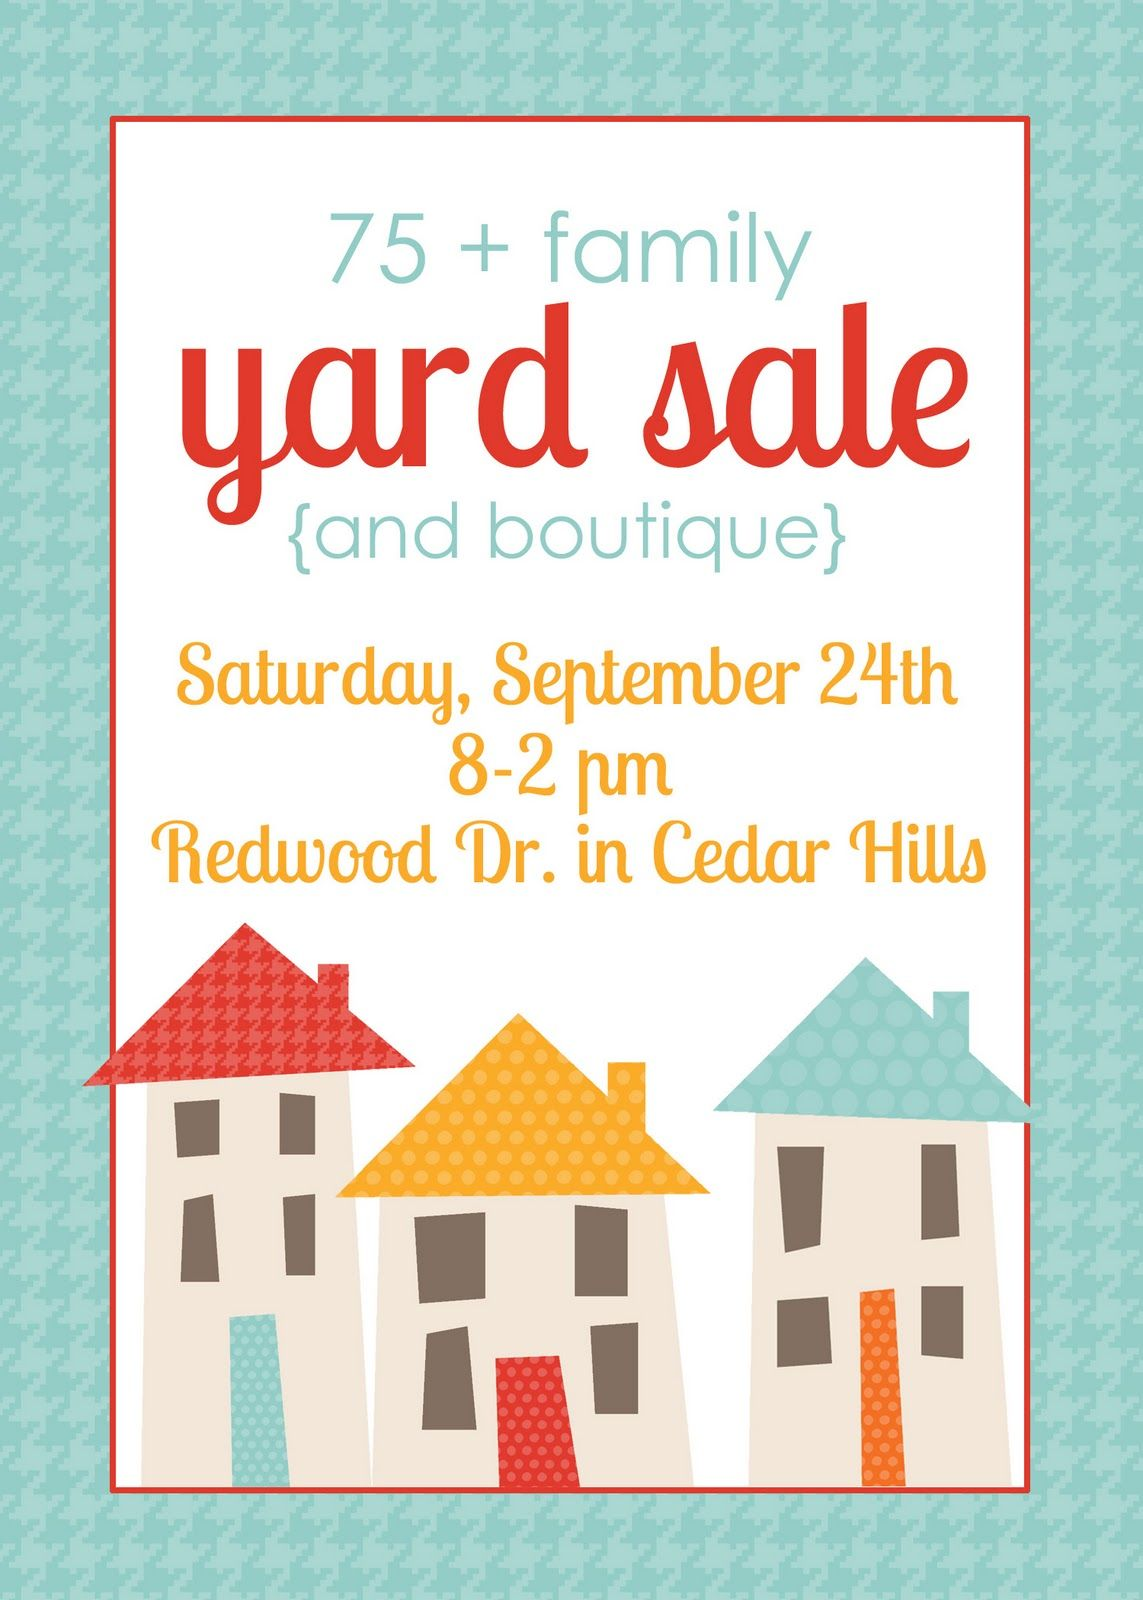 Huge  Family Yard Sale Bake Sale Flyer Very Pretty And Directs